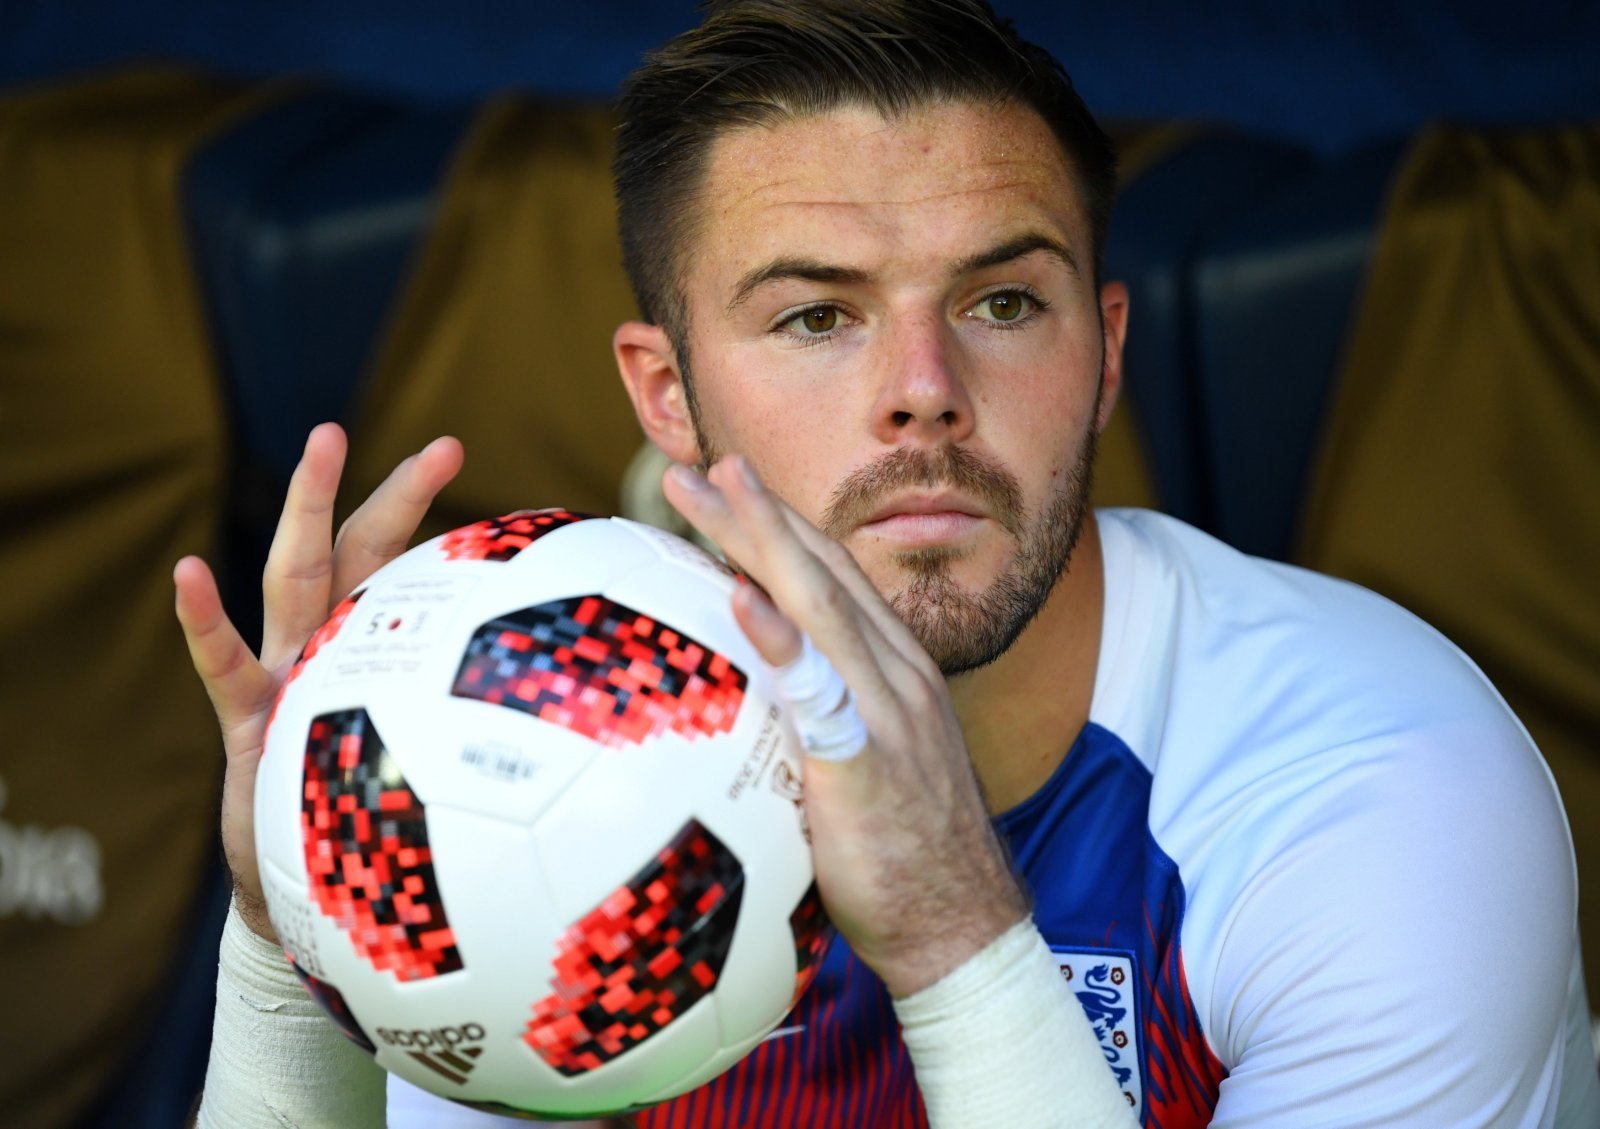 Tottenham would benefit from Jack Butland if the price was right